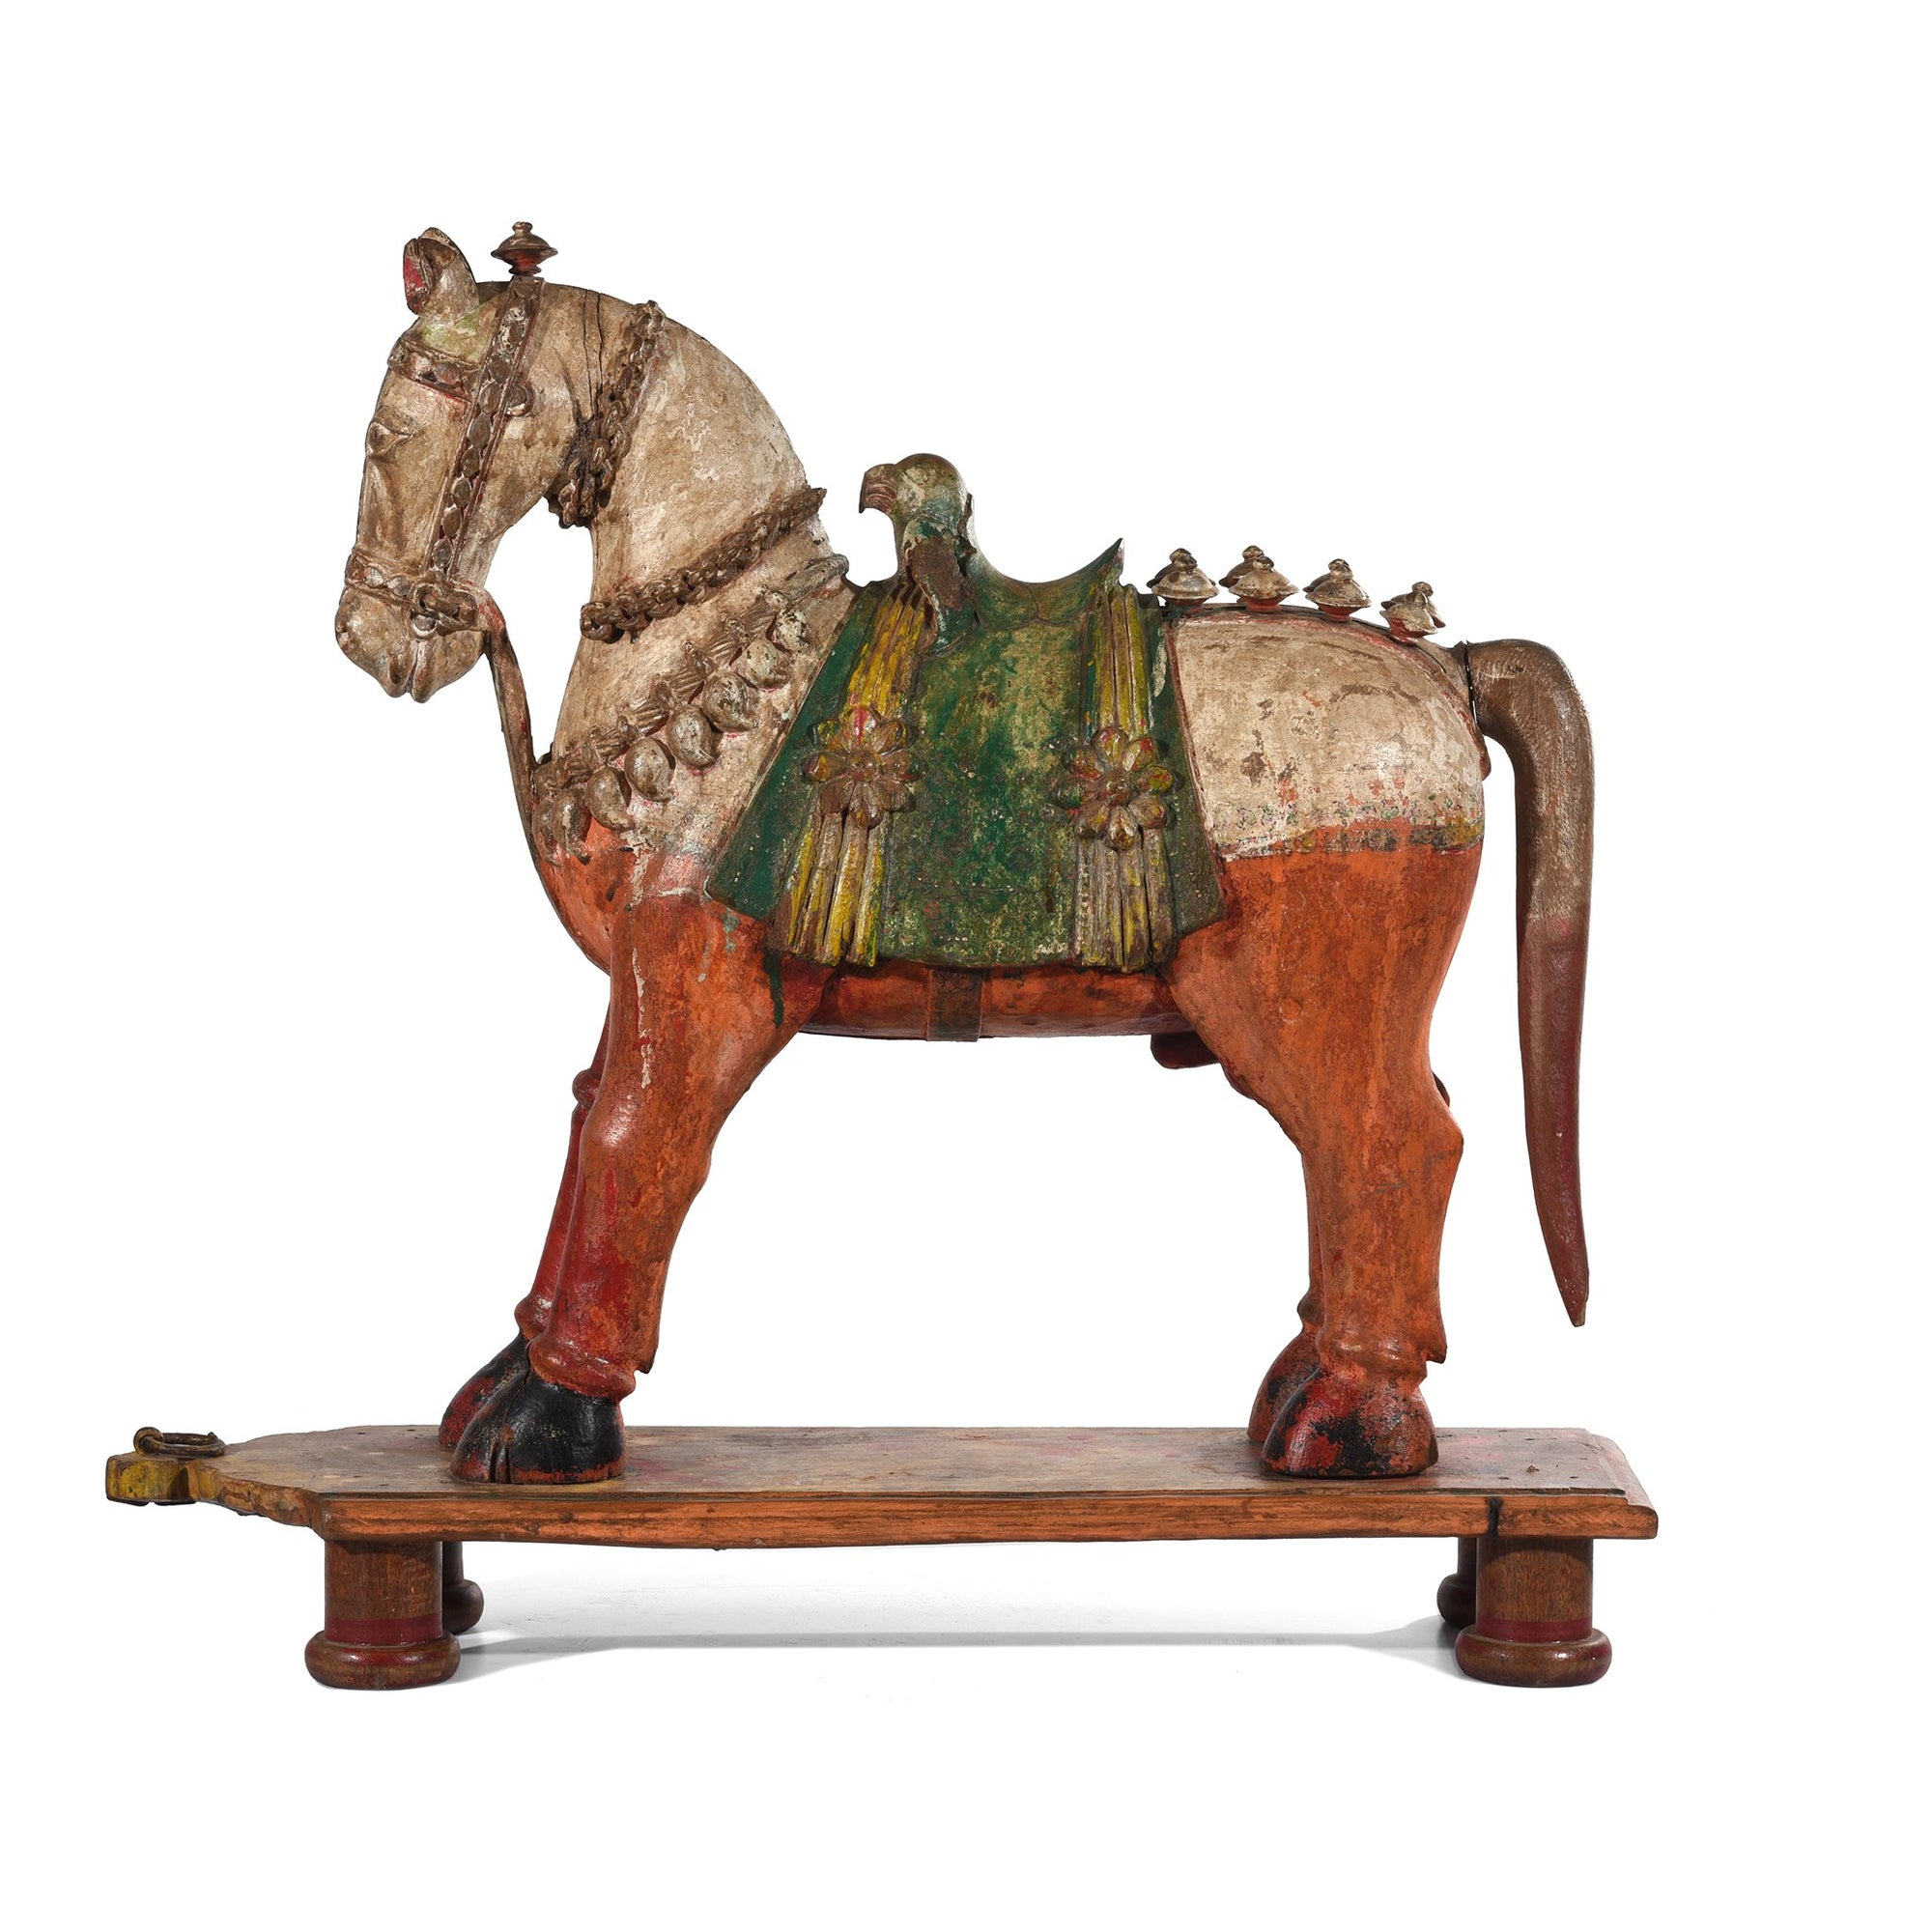 A rare painted teak horse from Patan, India carved in the 19th century.